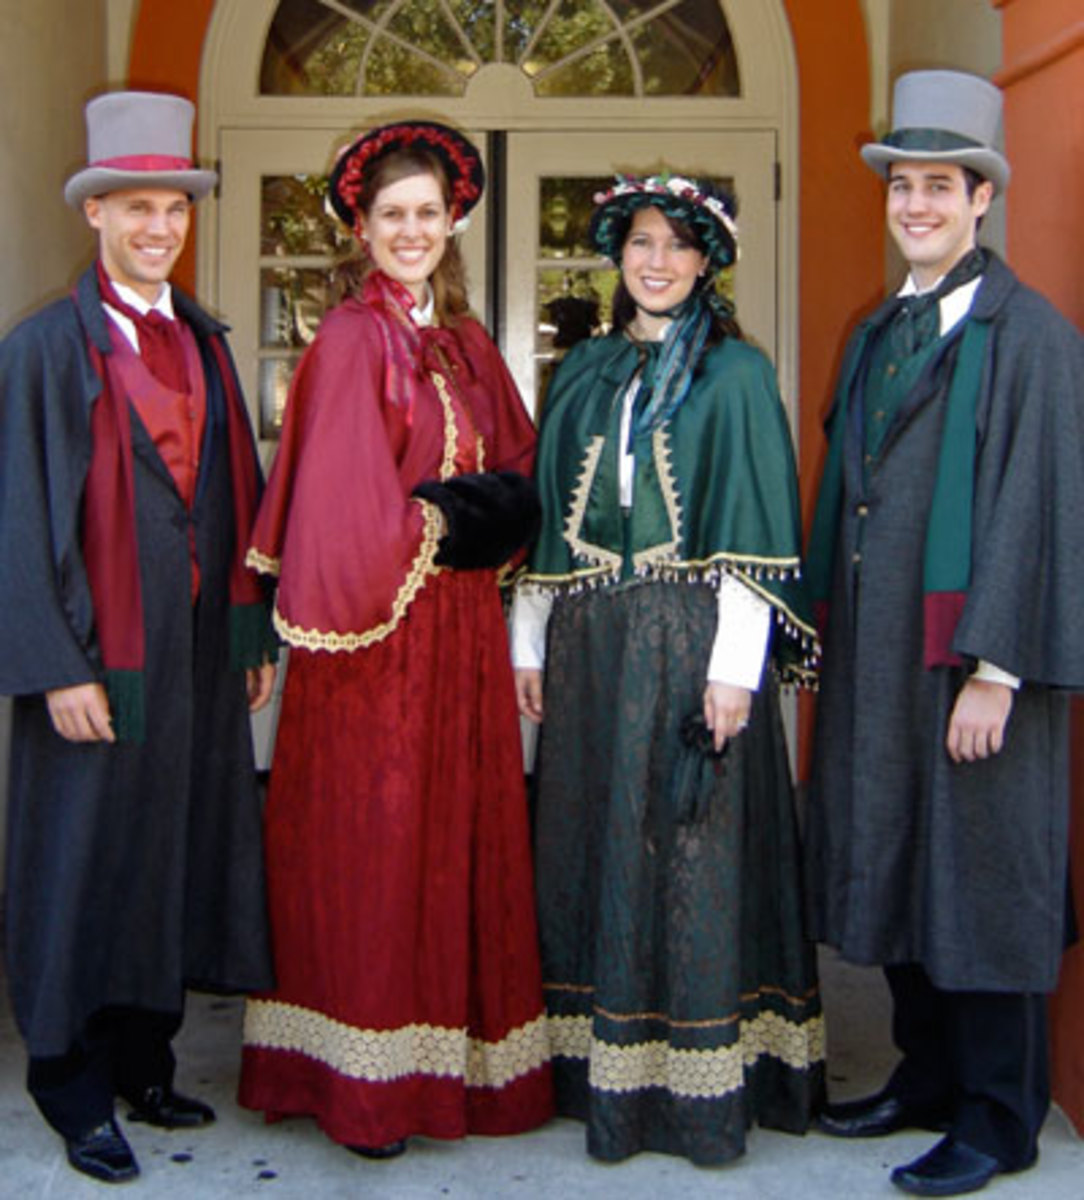 Dickens-Inspired Period Costumes